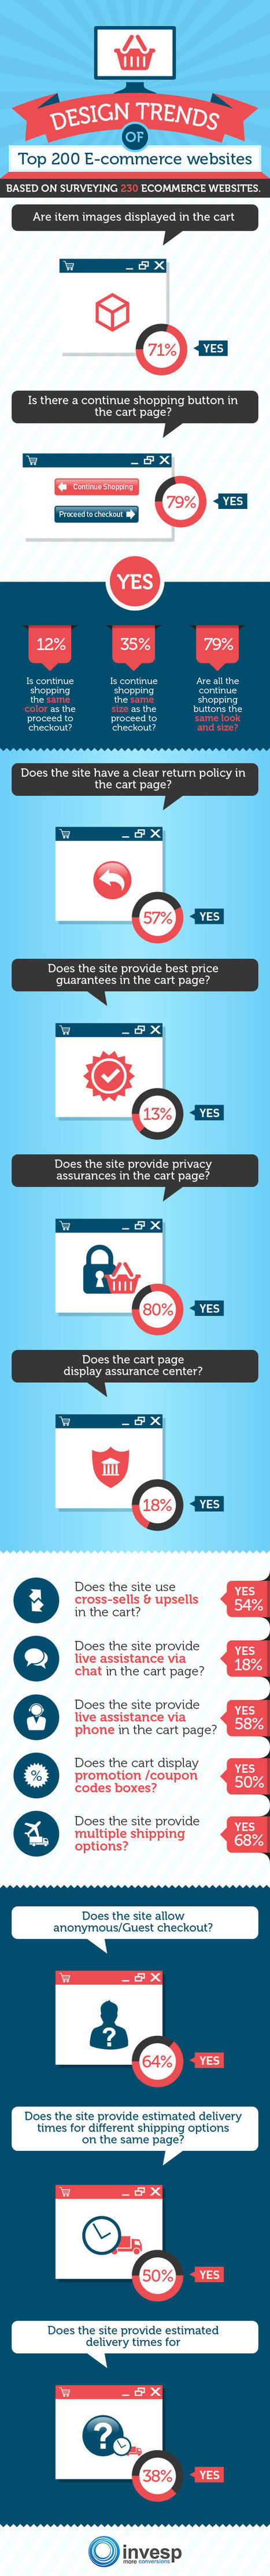 14 Design Trends of Top Ecommerce Checkouts #Infographic | Digital Marketing | Scoop.it